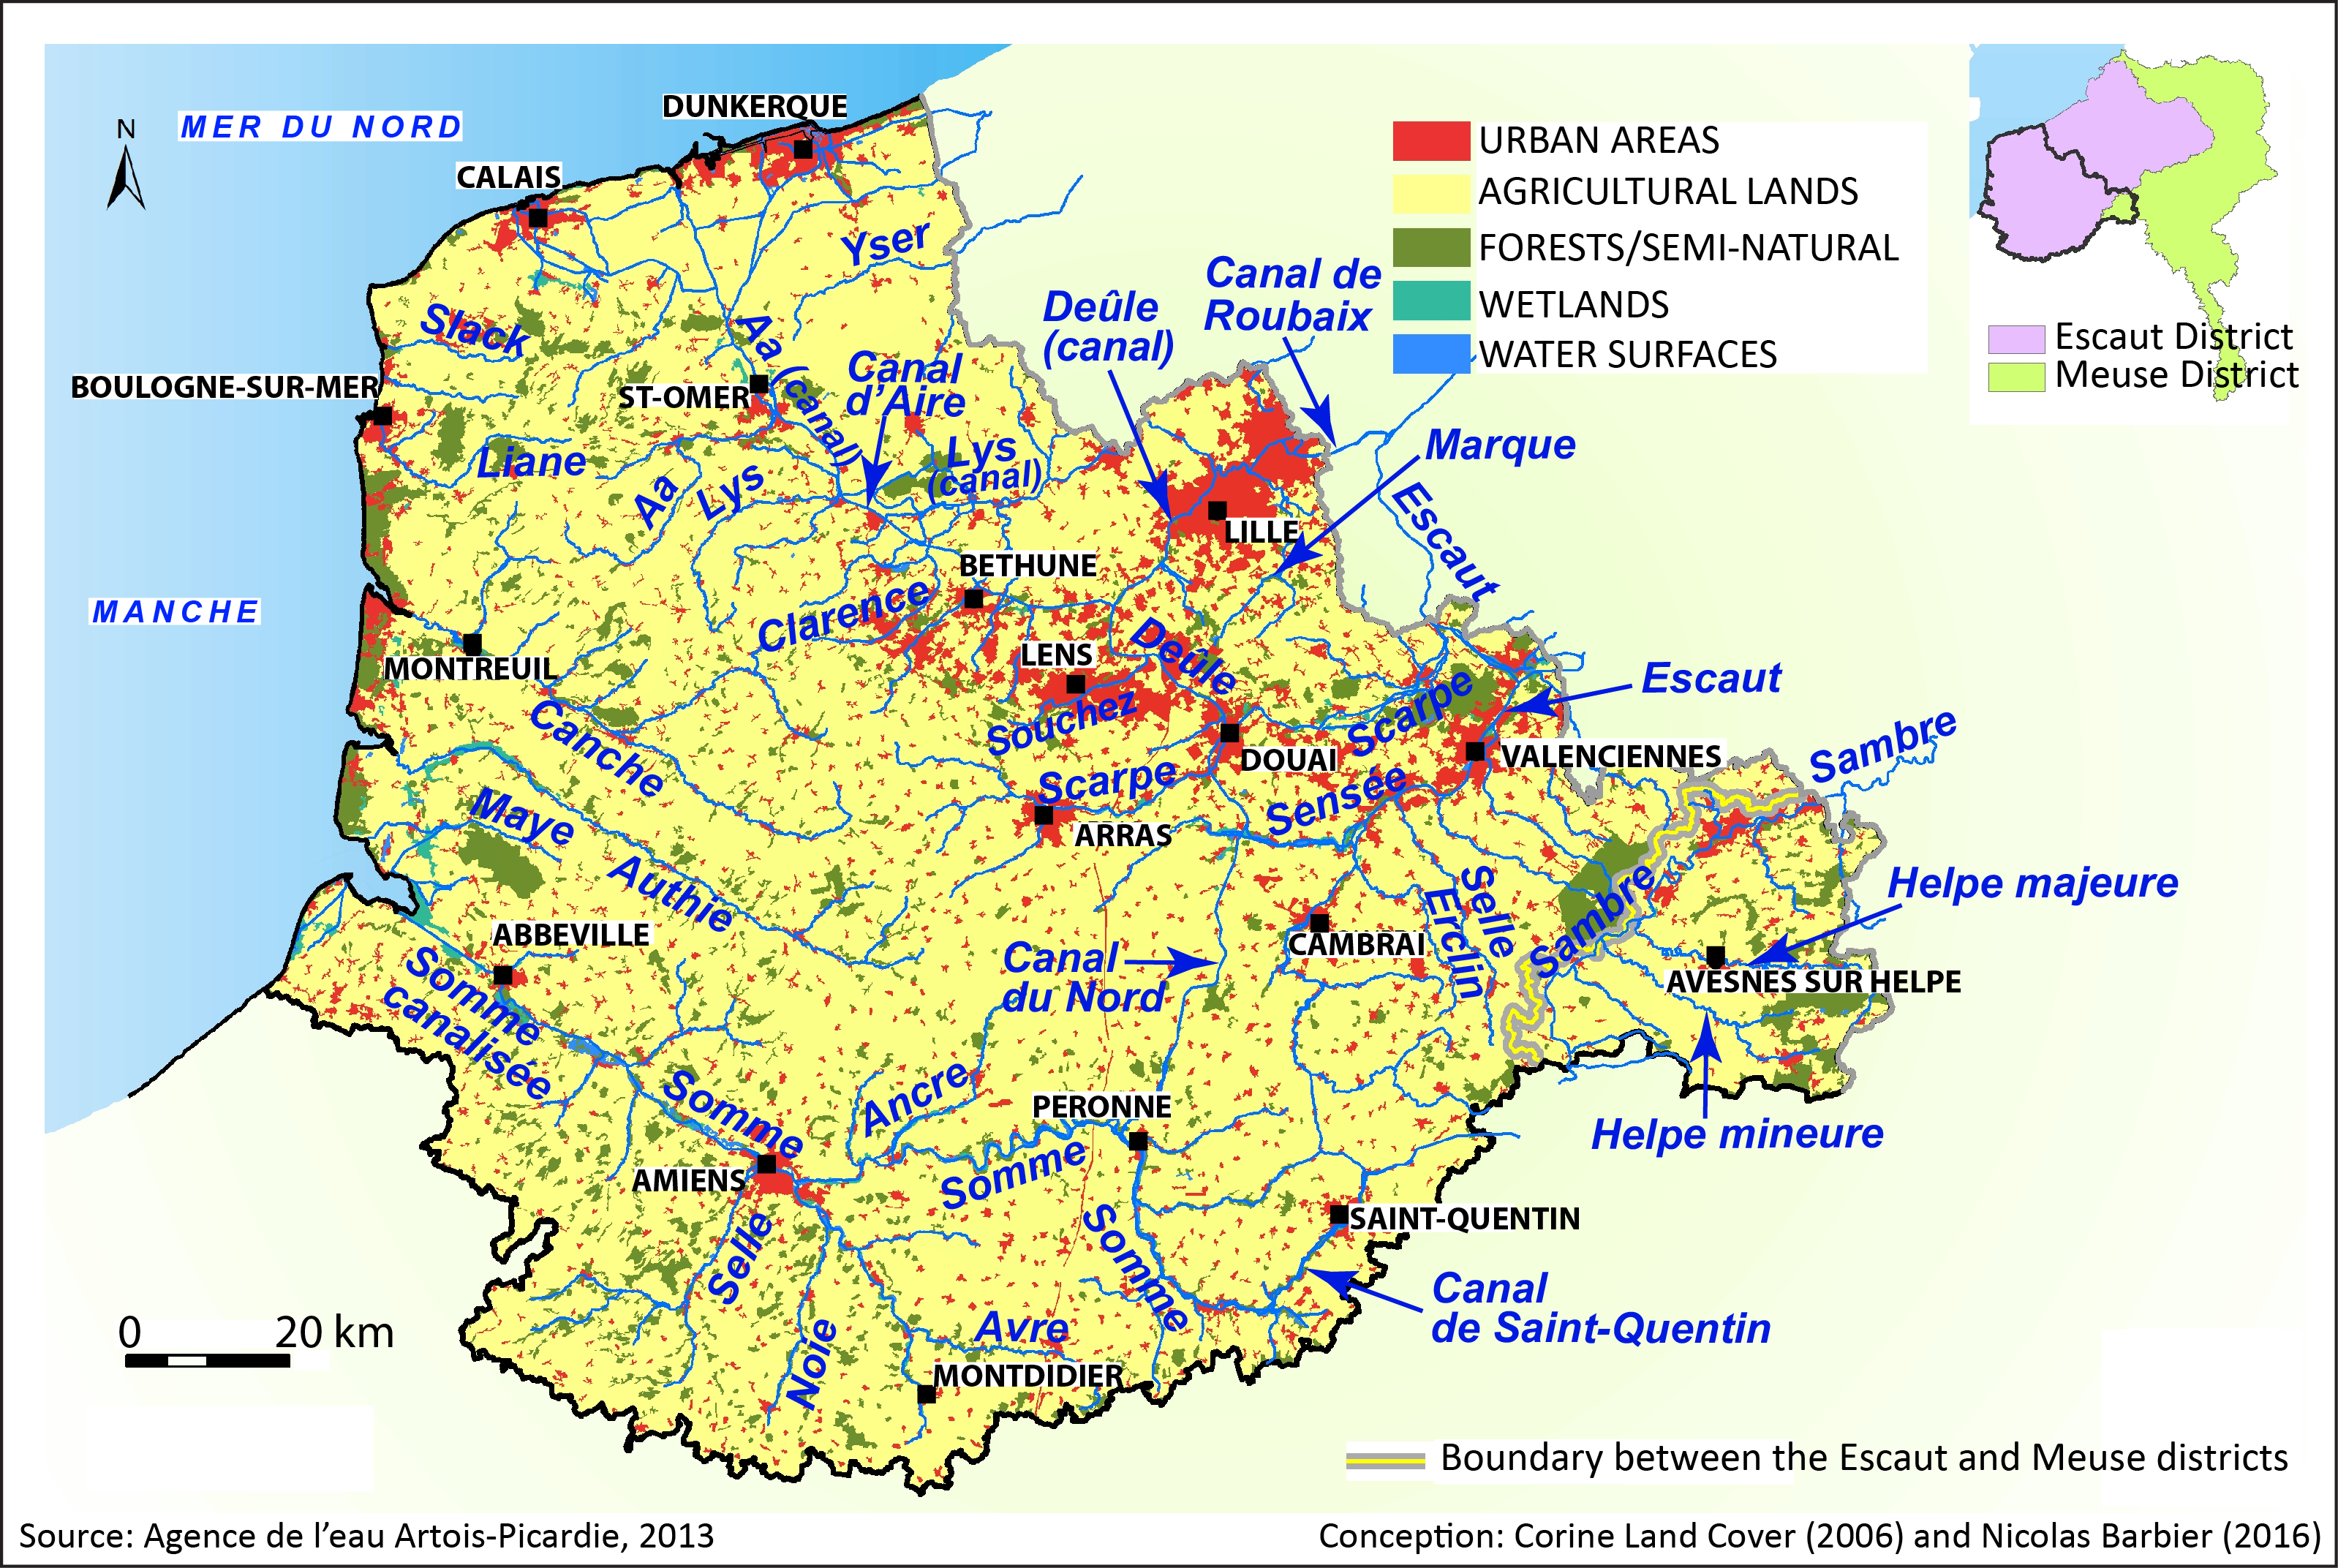 ventdouxprod 2017 nicolas barbier european union water polluters artois-picardie land cover rivers urban areas agricultural areas forests wetlands